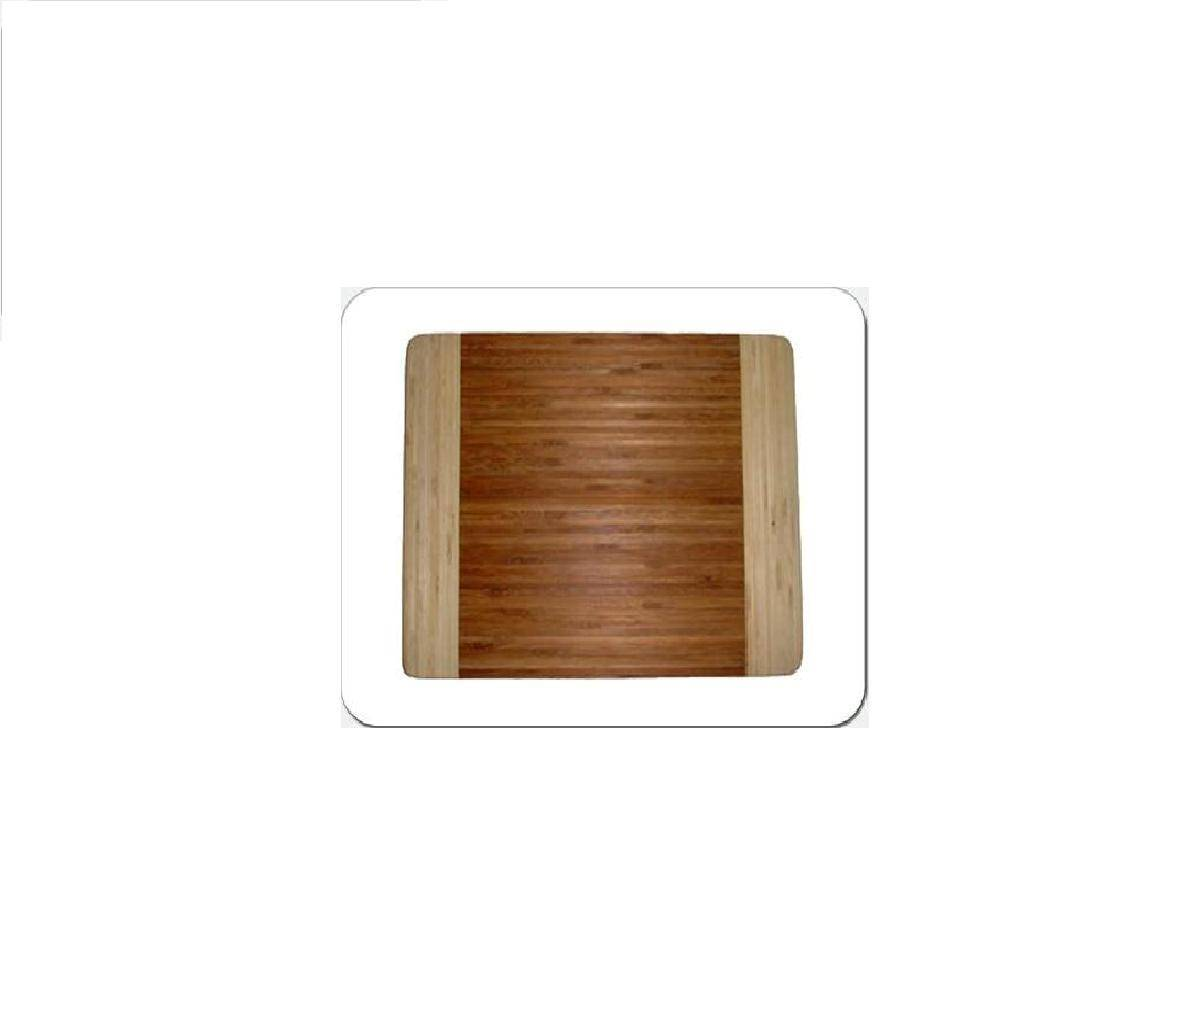 Square Bamboo chopping board